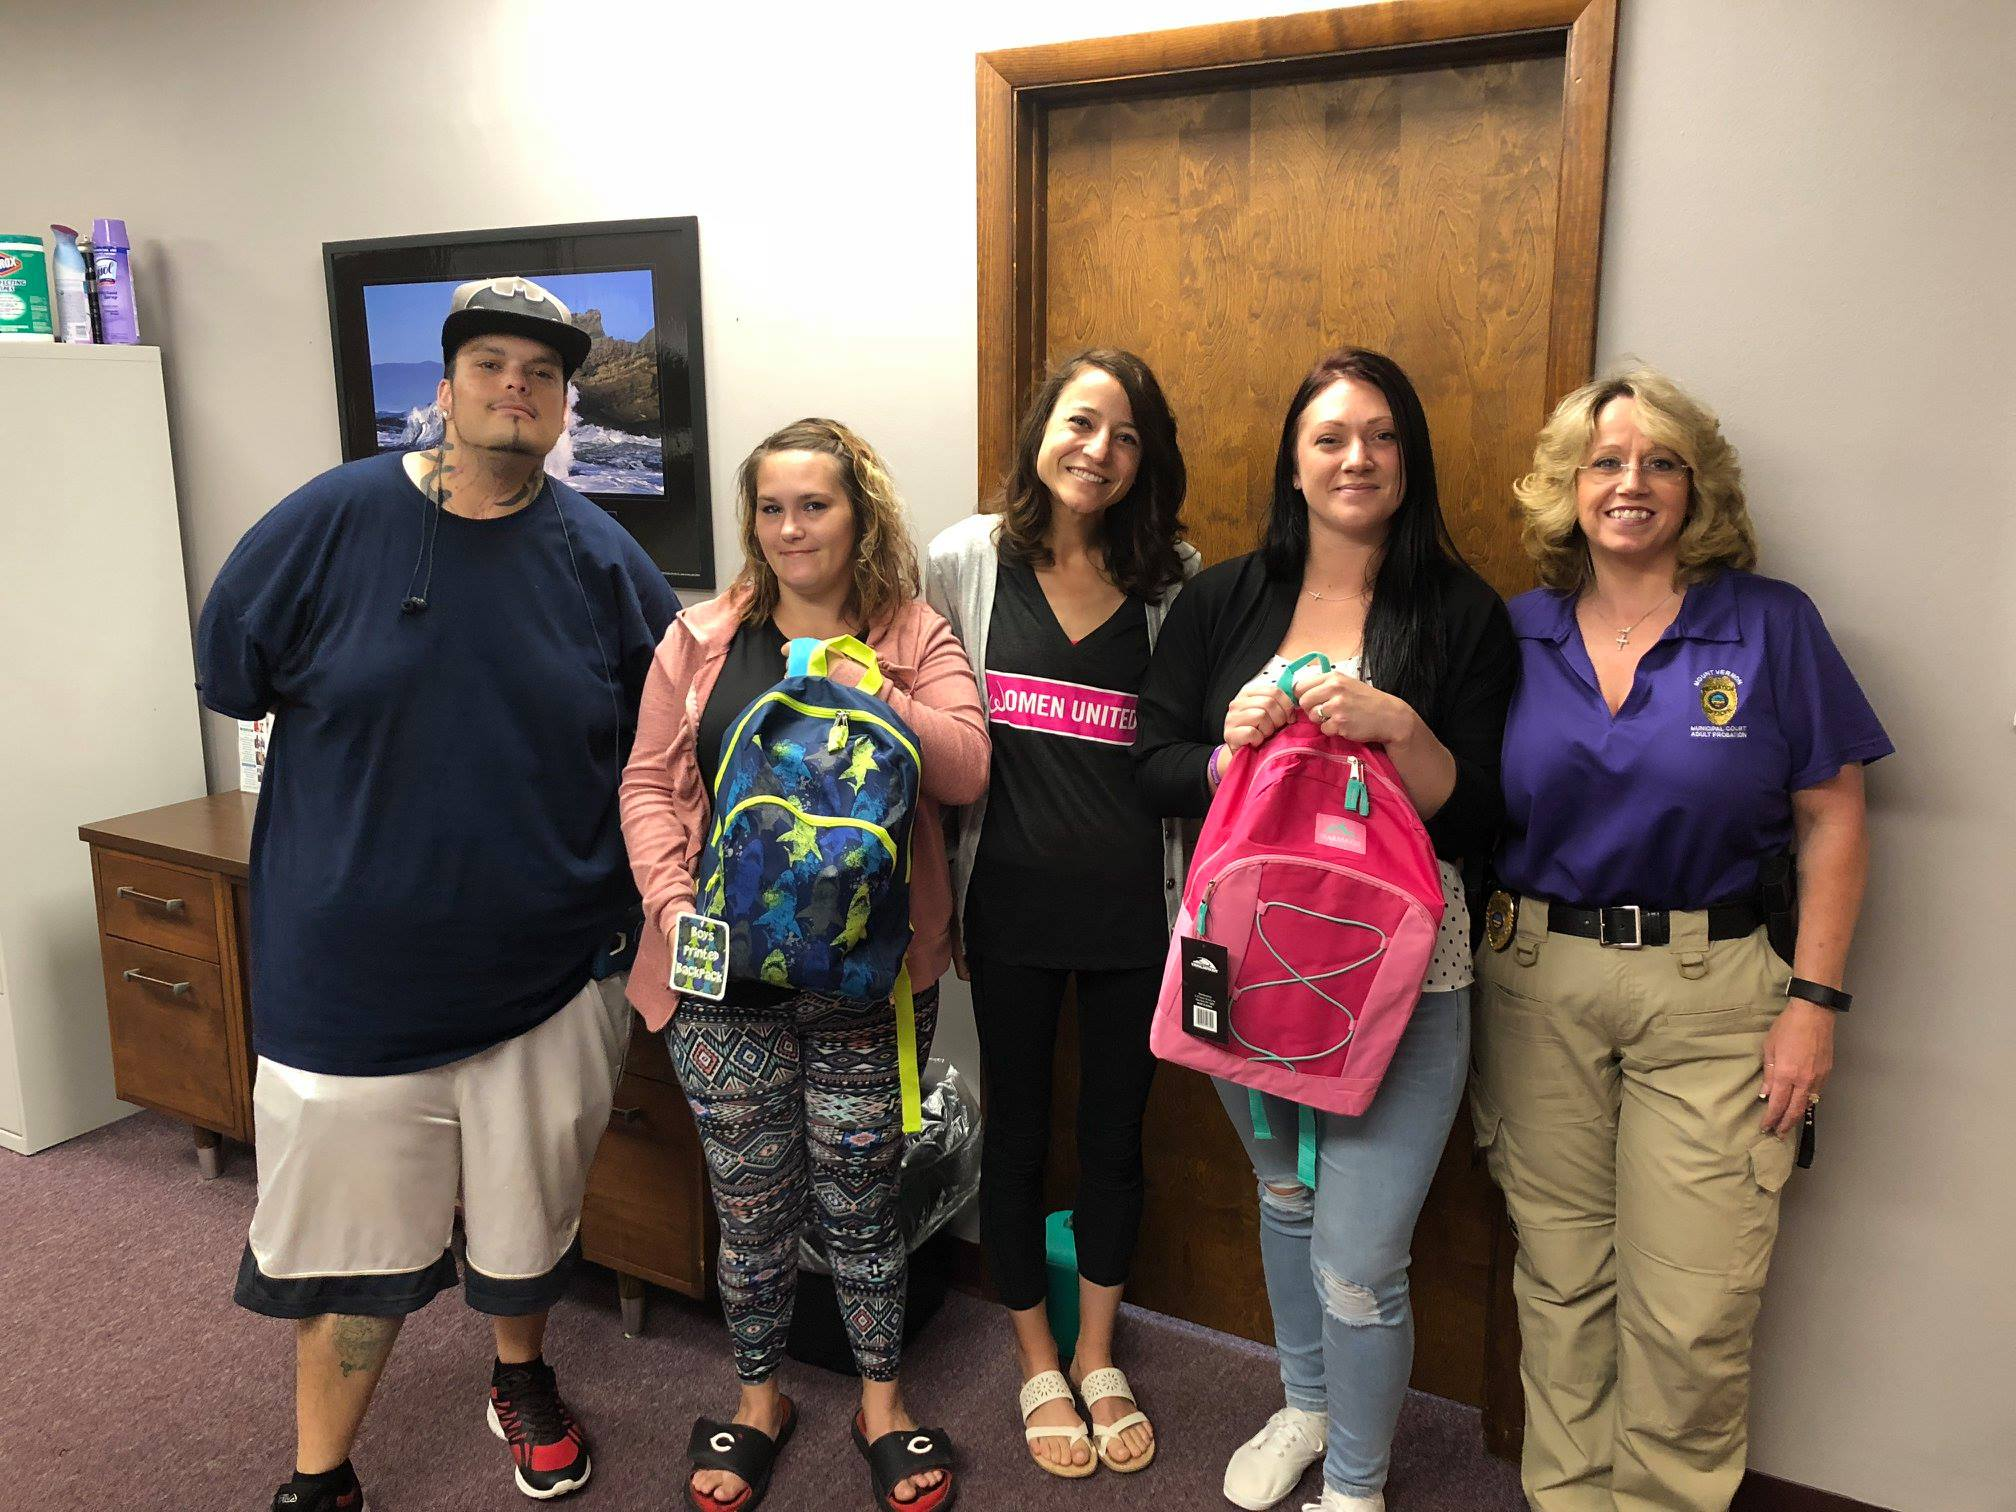 Elizabeth Doolittle, Program Director, is pictured with parents of book bag recipients at the Mount Vernon Municipal Court Probation Dept.. Also shown is Laura and her two children who very excited about receiving their book bags.